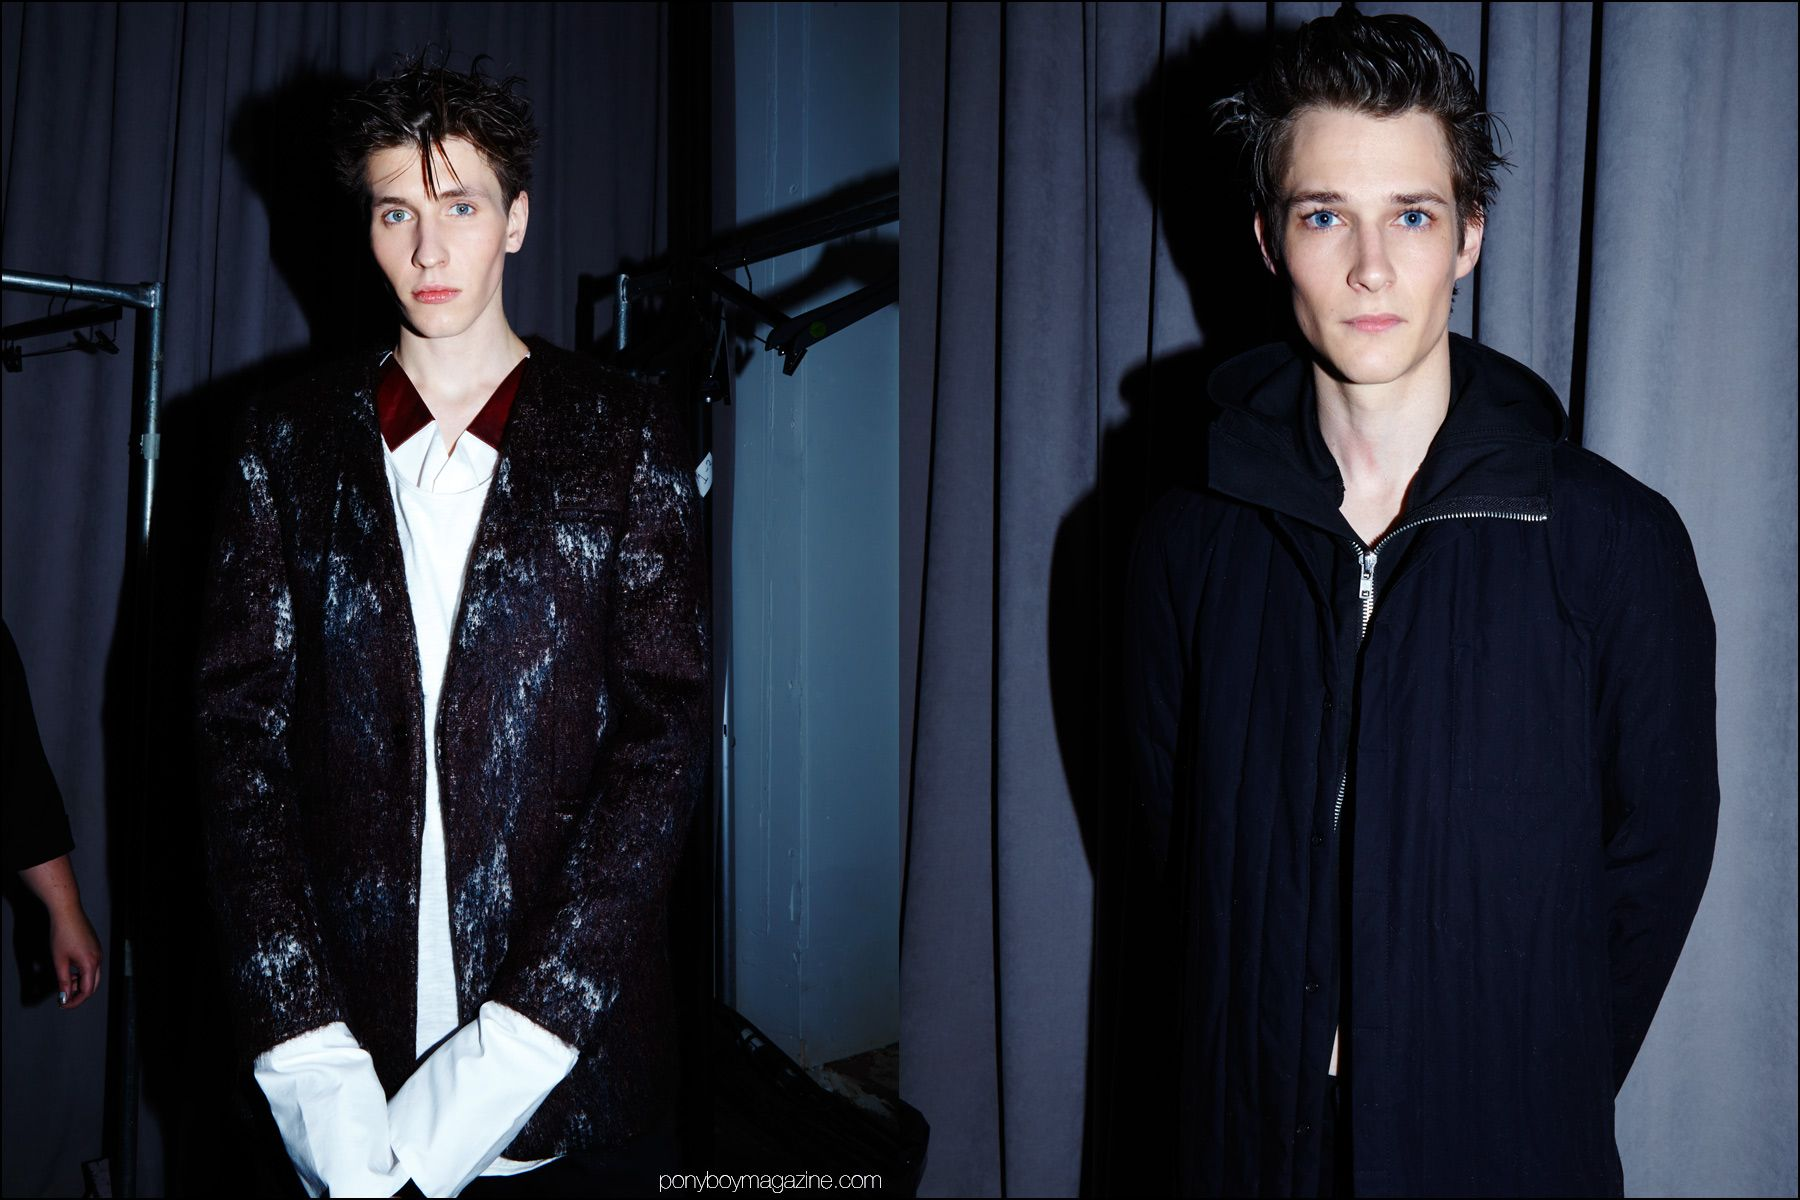 Male models photographed backstage in the latest designs by Siki Im + Den Im F/W16. Photography by Alexander Thompson for Ponyboy magazine NY.